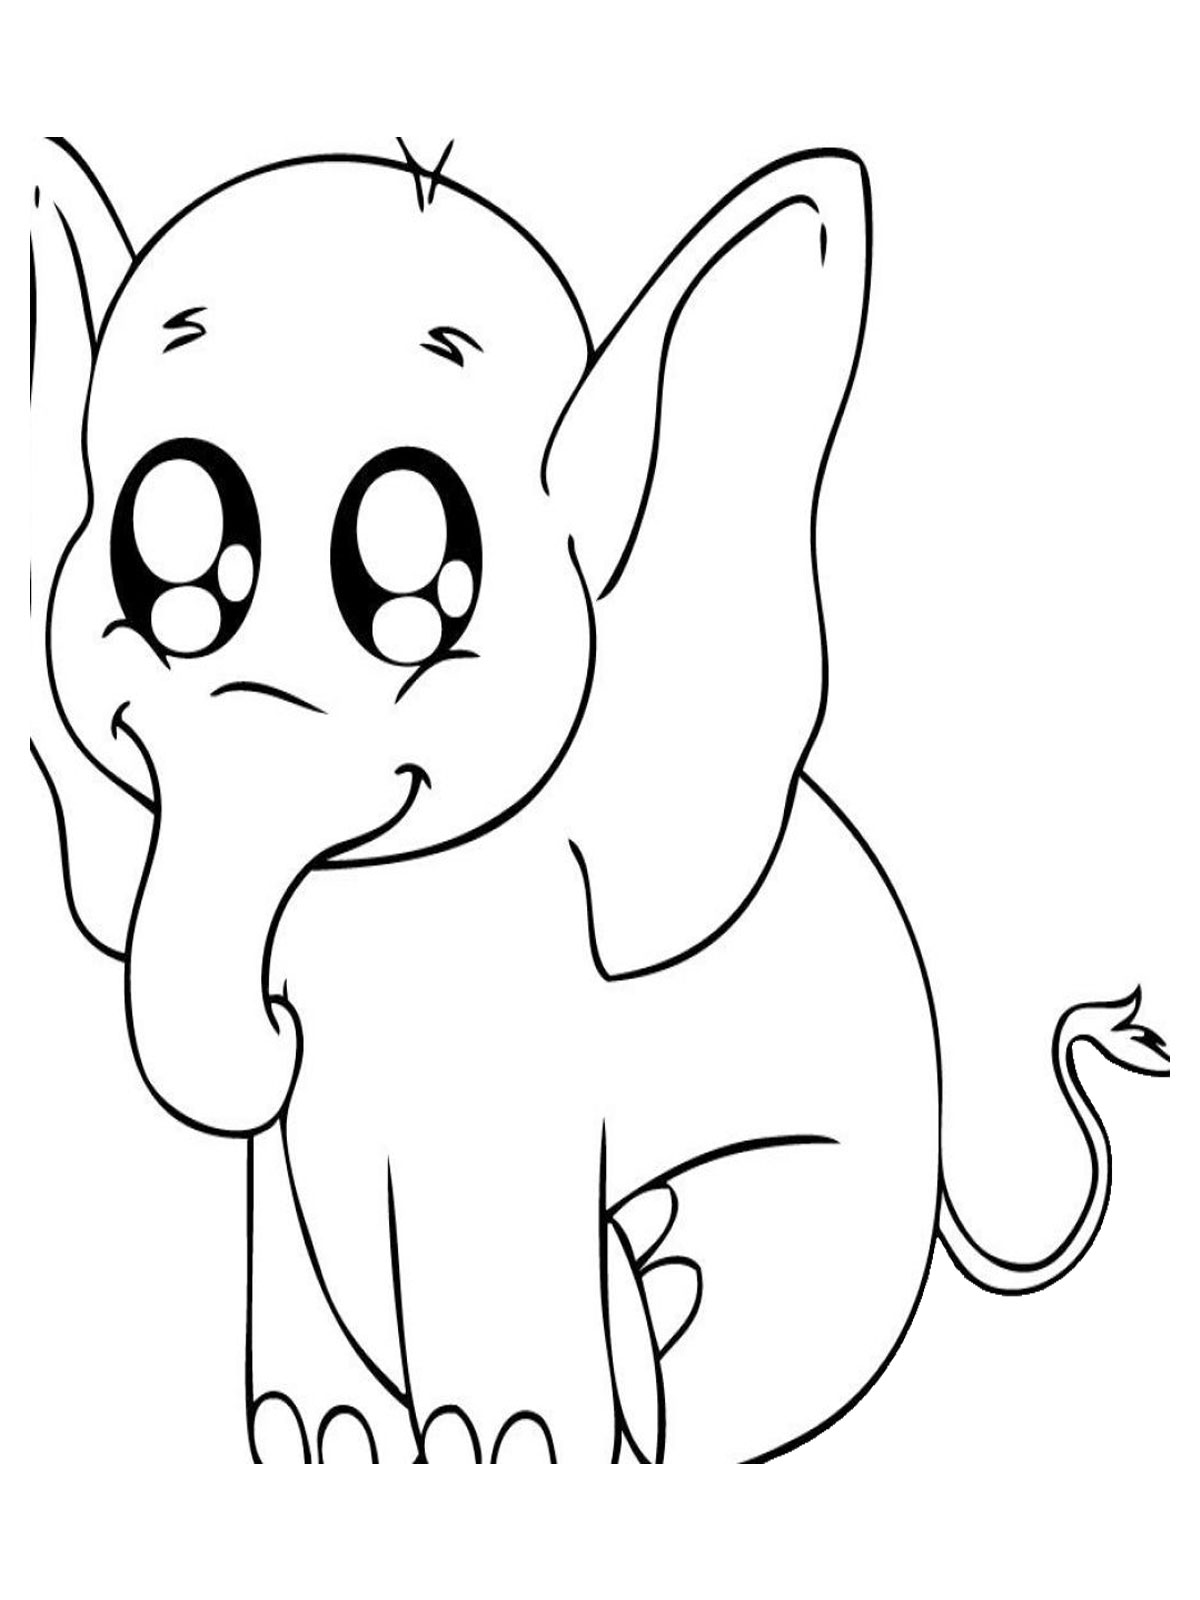 free baby animal coloring pages get this cute baby animal coloring pages to print 6fg7s coloring baby pages free animal